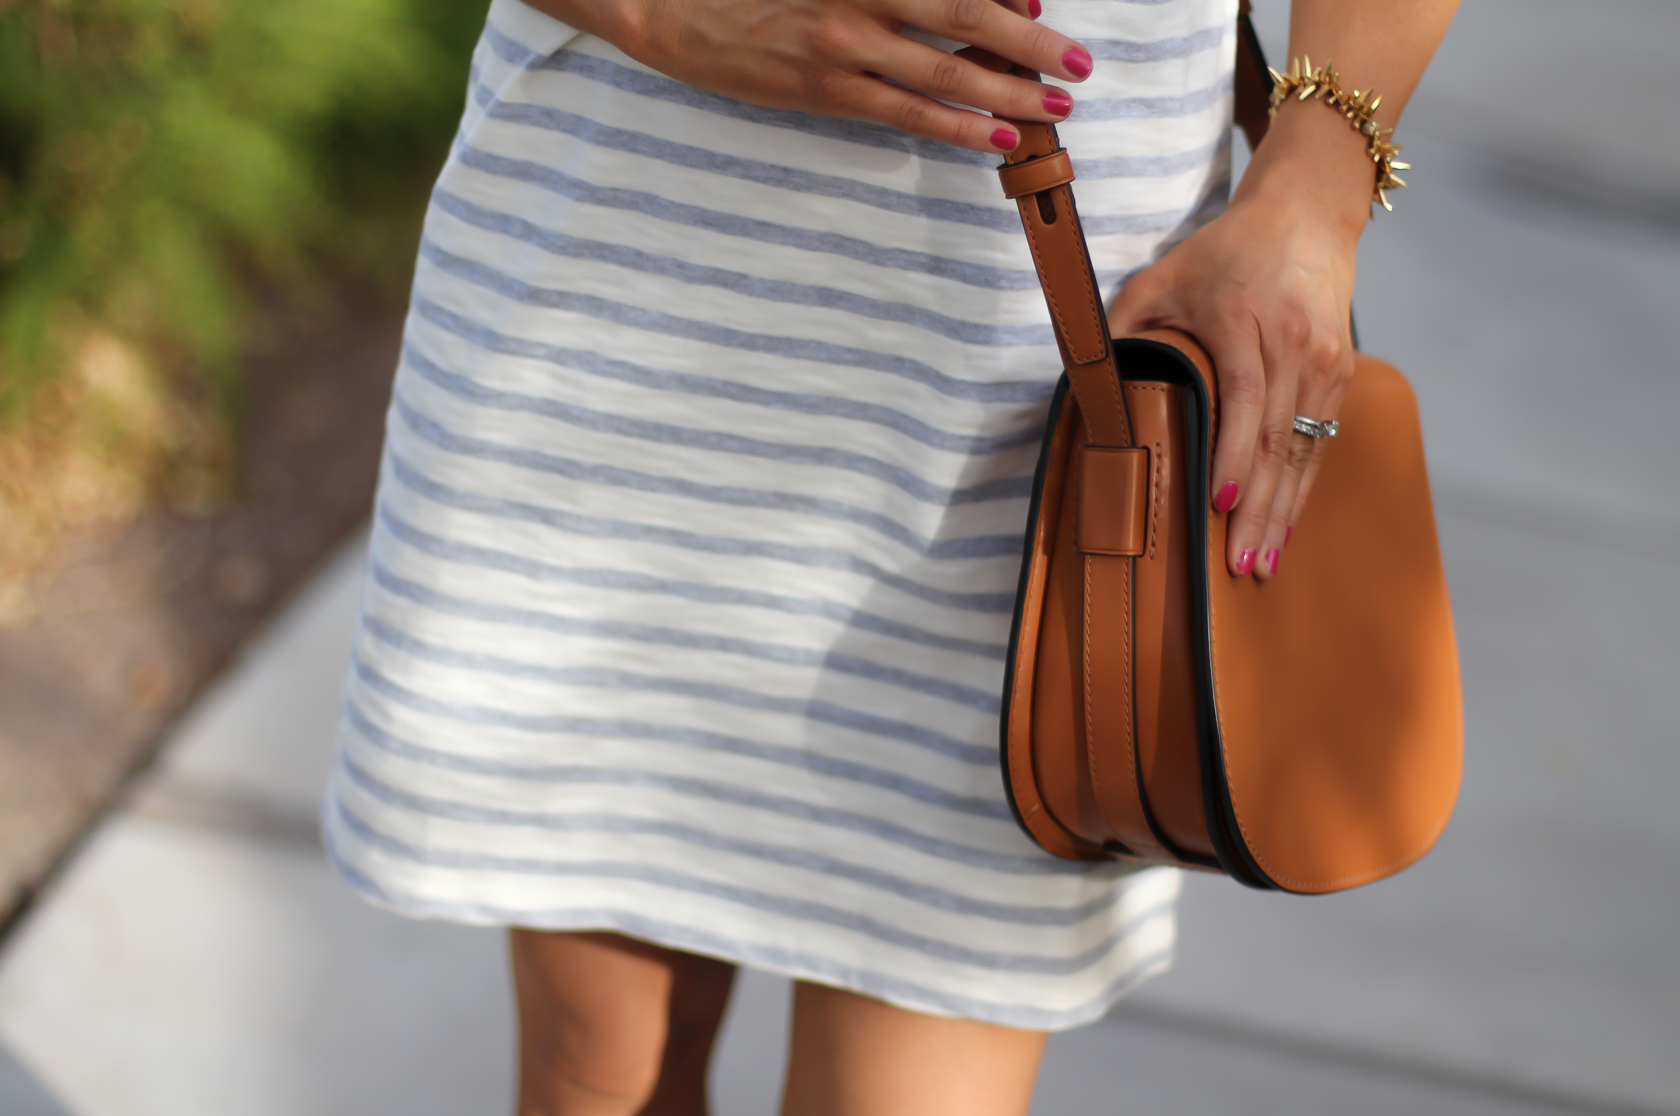 Grey Striped Button Back Short Sleeve Dress, Cognac Leather Wedge Sandals, Cognac Saddlebag, Madewell, Tory Burch 20